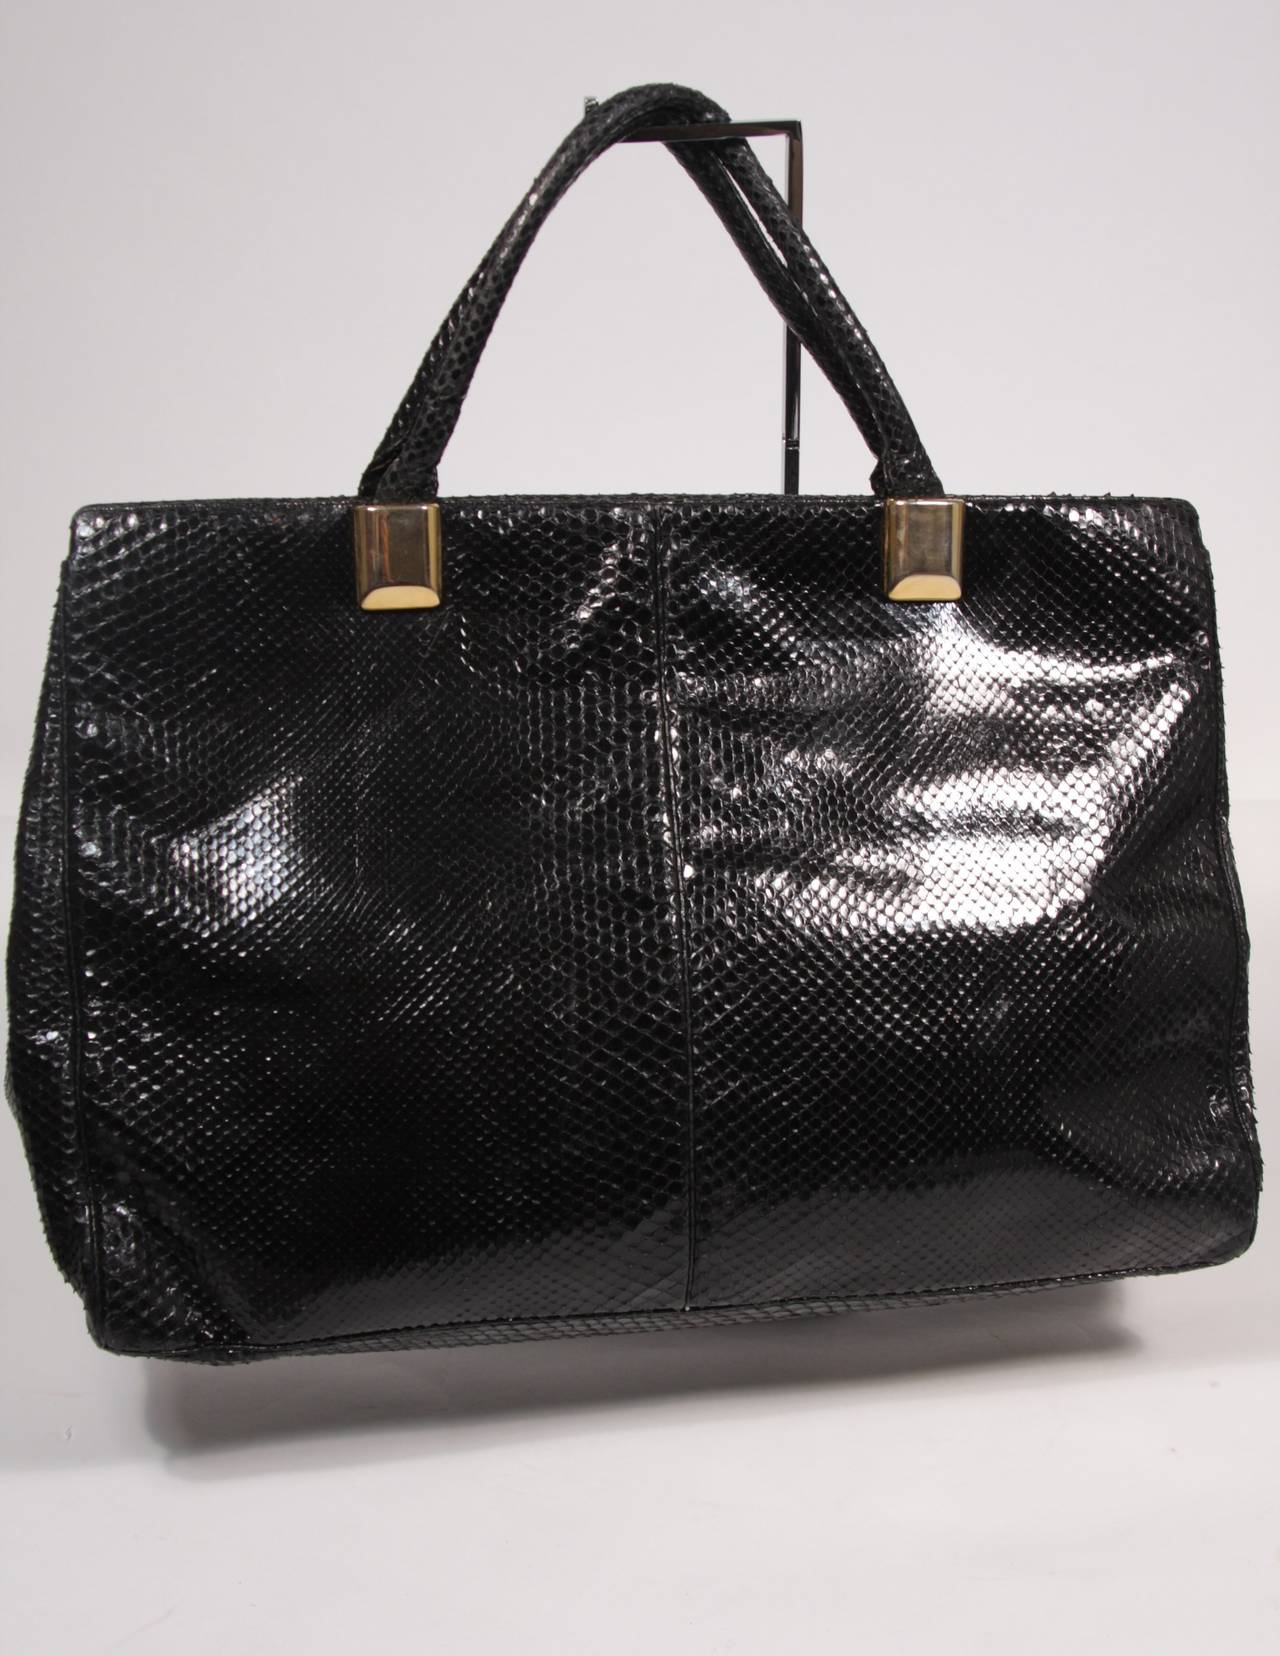 Judith Leiber XL Black Snakeskin Tote with Coin Purse Excellent Condition For Sale 3